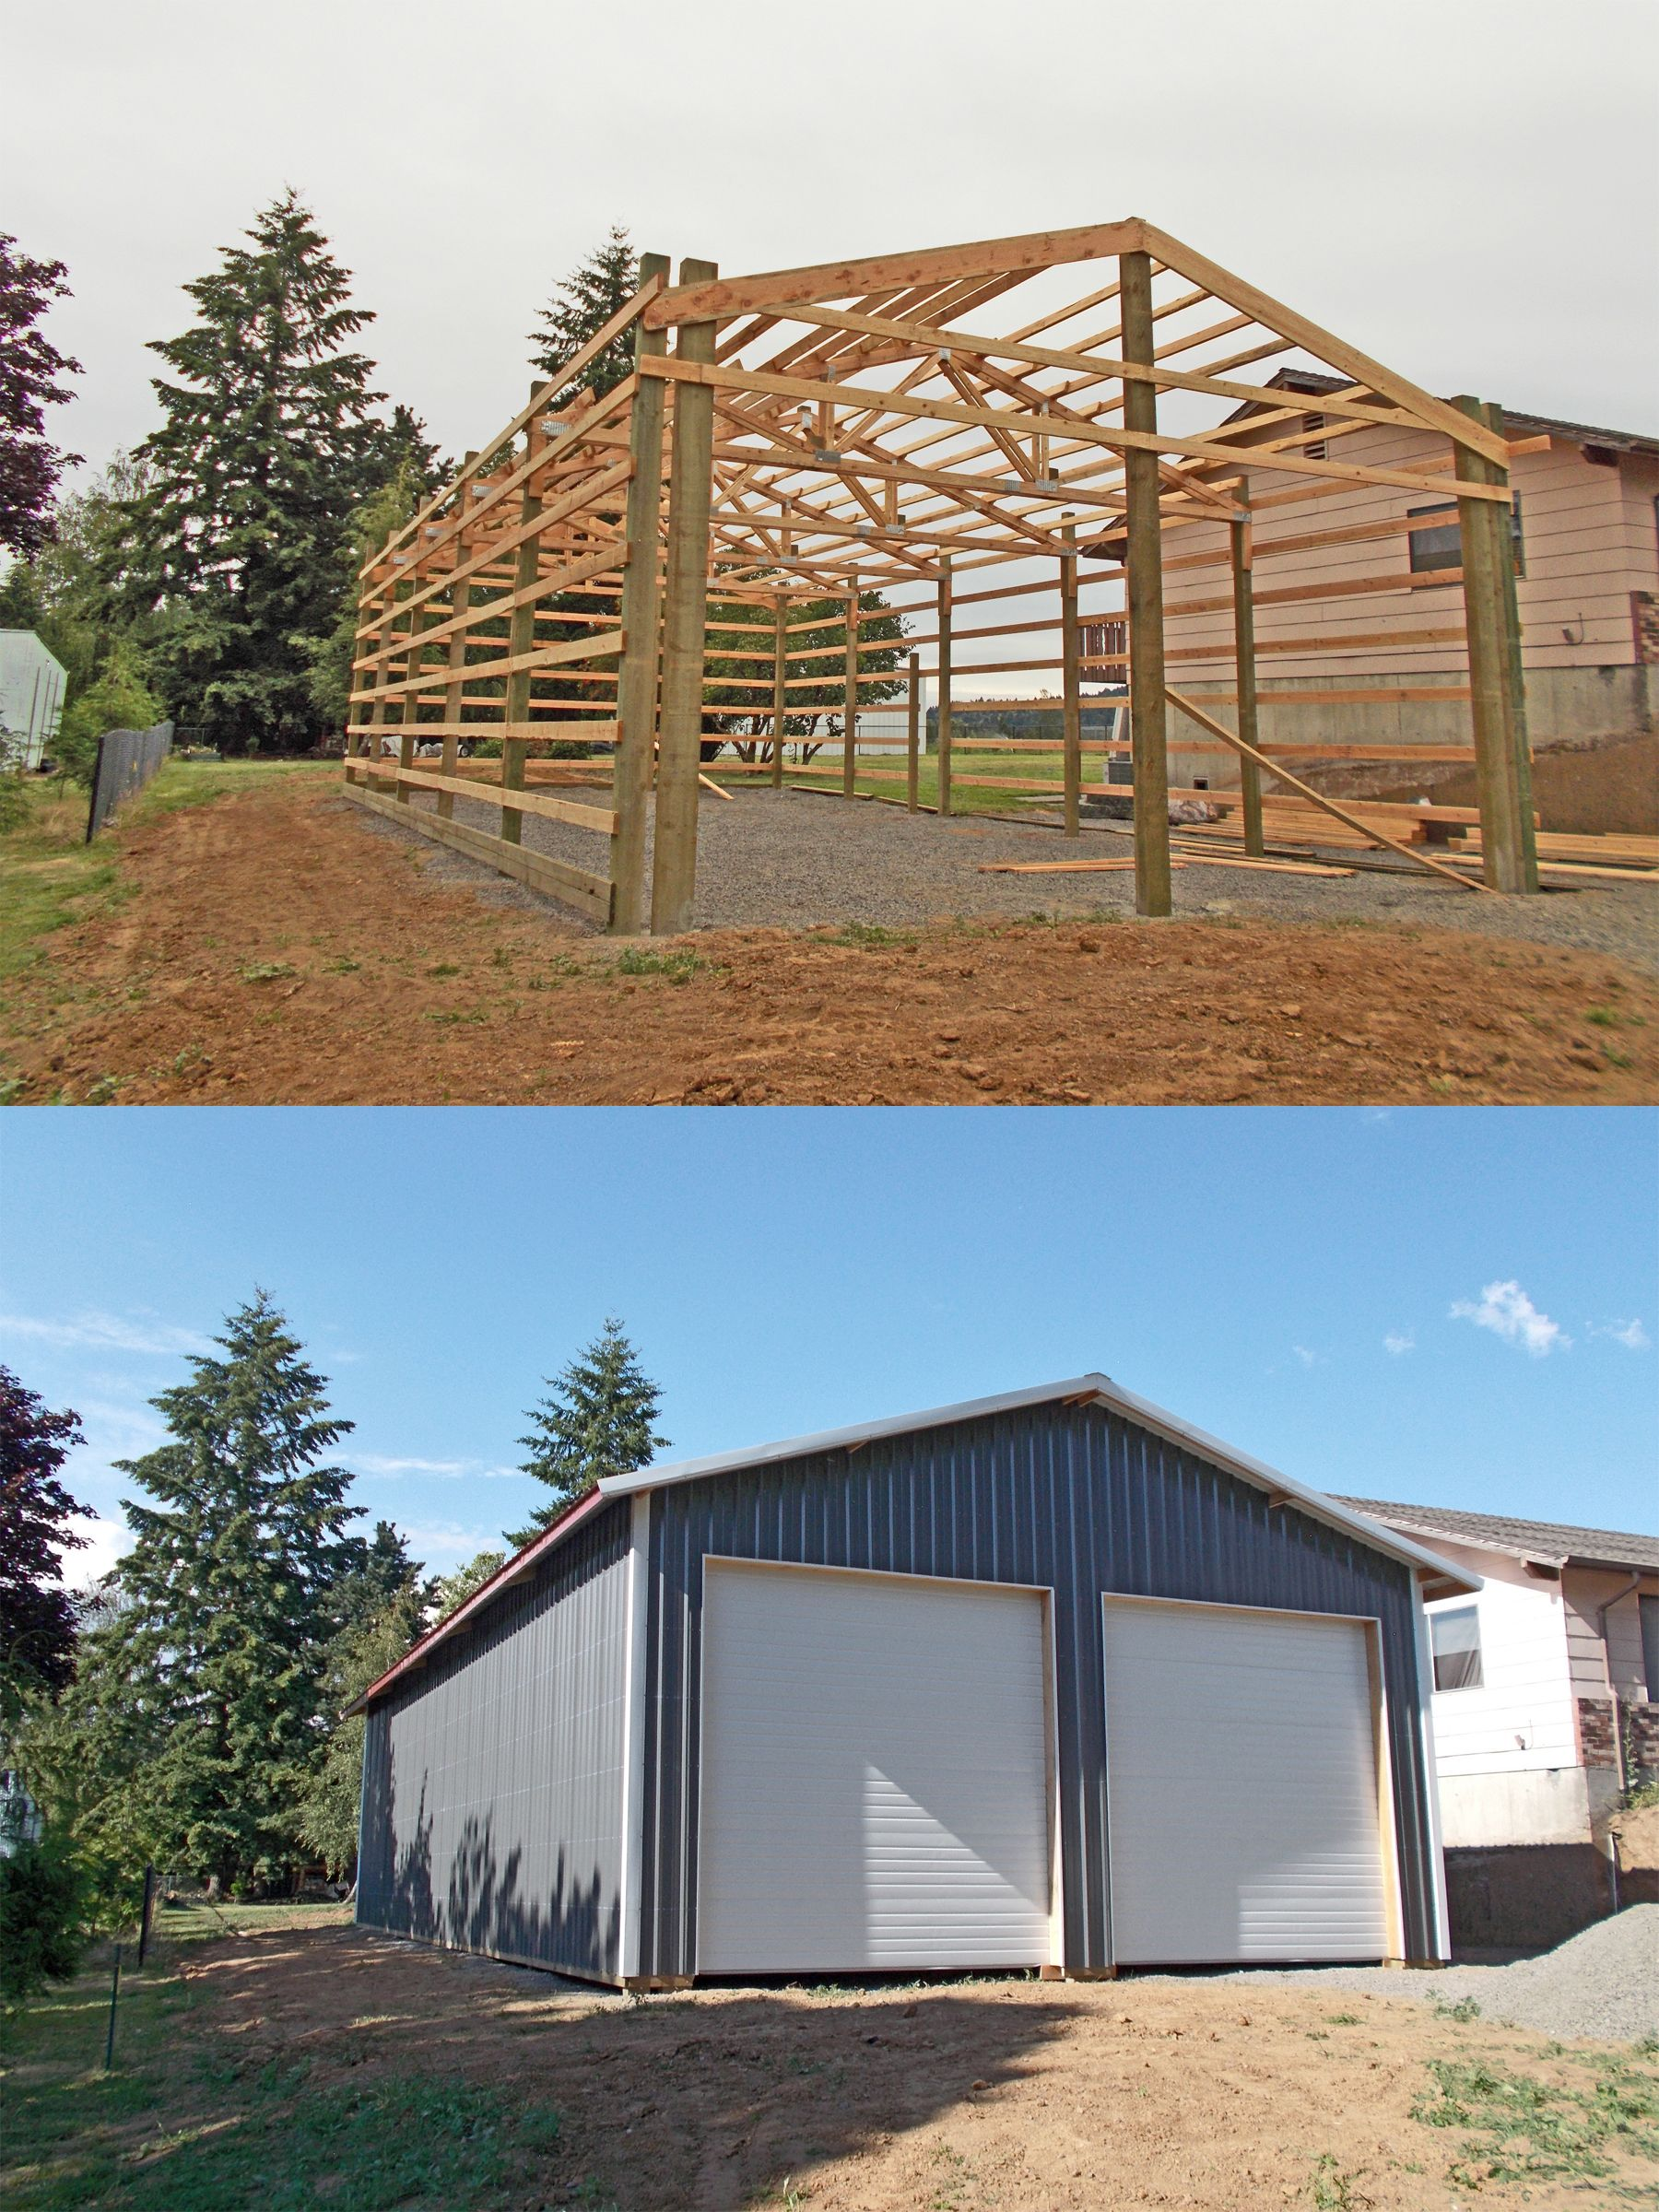 30 X 60 X 14 Residential Pole Building With Two Overhead Doors And Overhang Www Econofabbuildings Com Building A Pole Barn Metal Buildings Pole Barn Homes